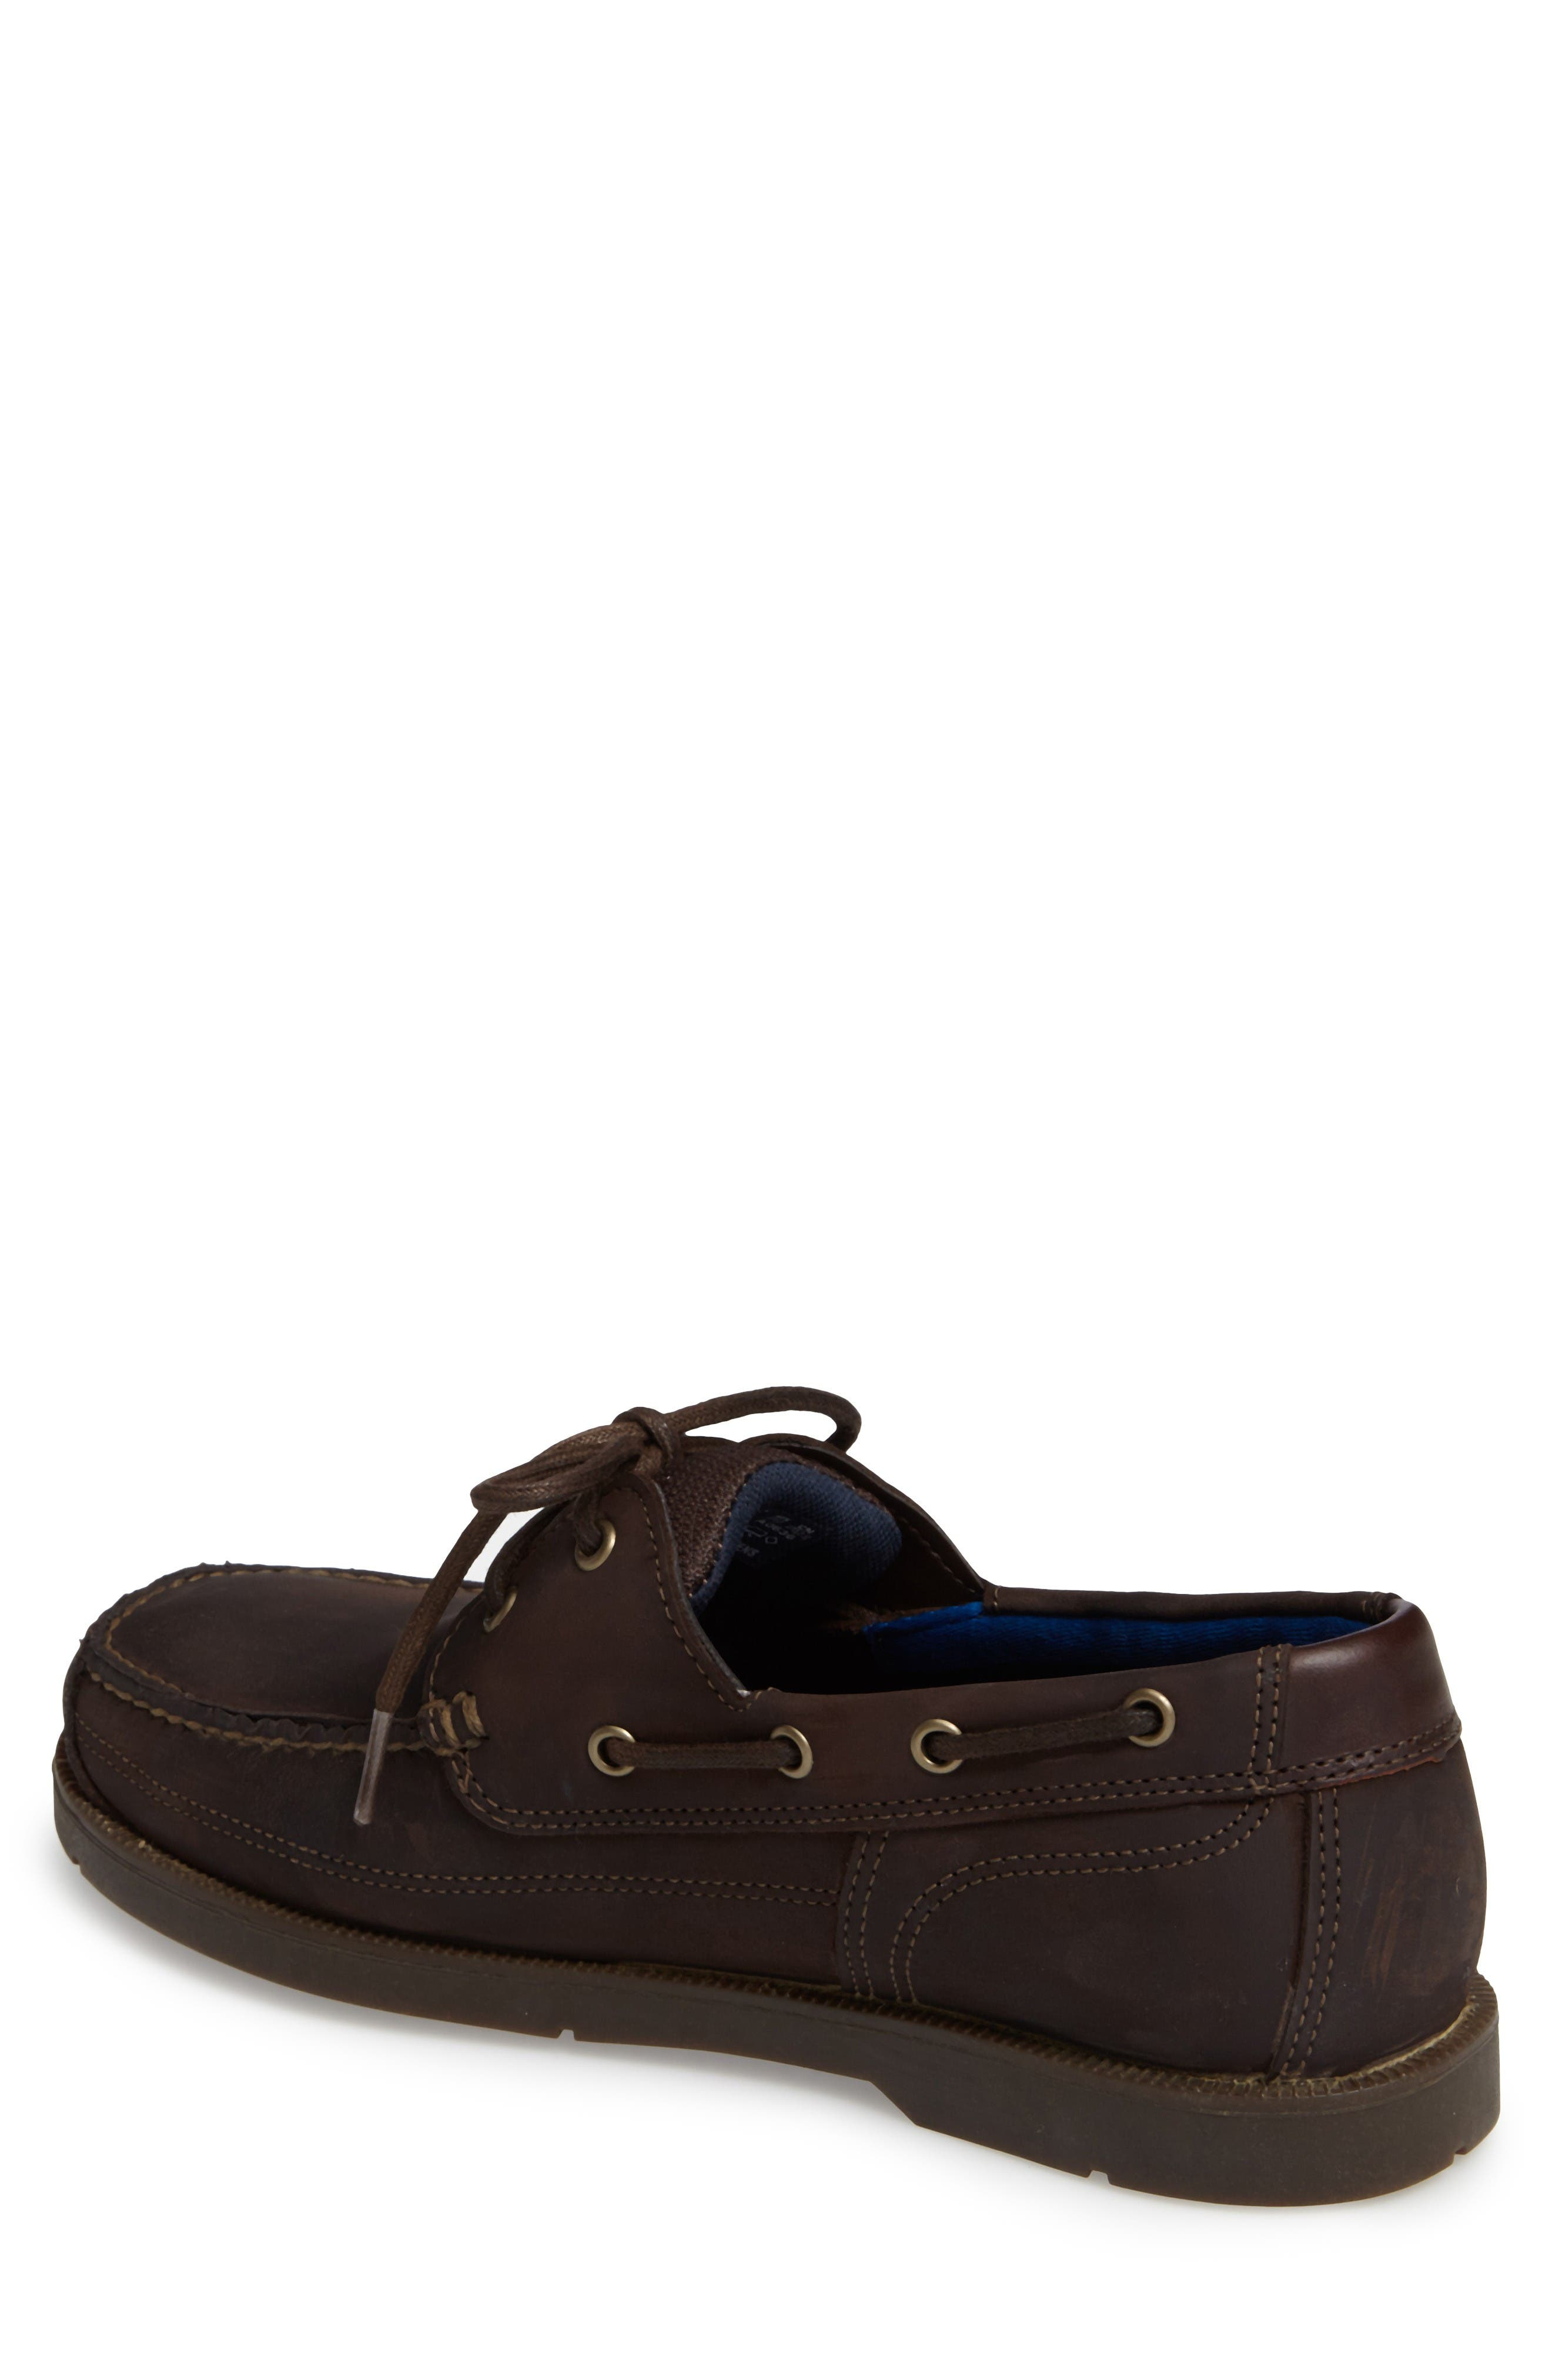 Alternate Image 2  - Timberland Piper Cove FG Boat Shoe (Men)